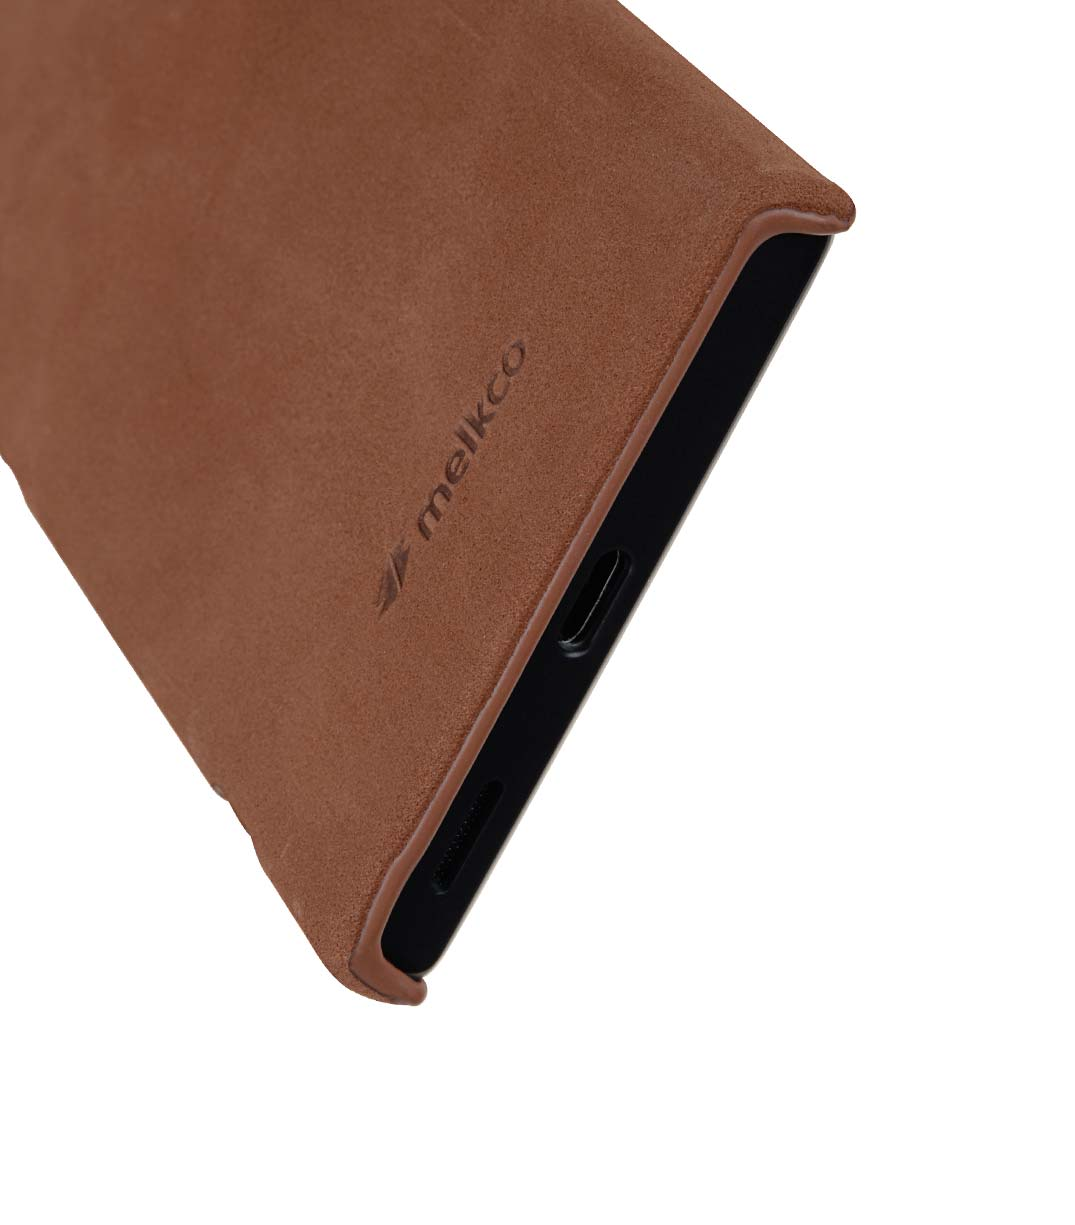 Melkco Premium Leather Snap Cover for Sony Xperia XA1 Ultra - ( Classic Vintage Brown )